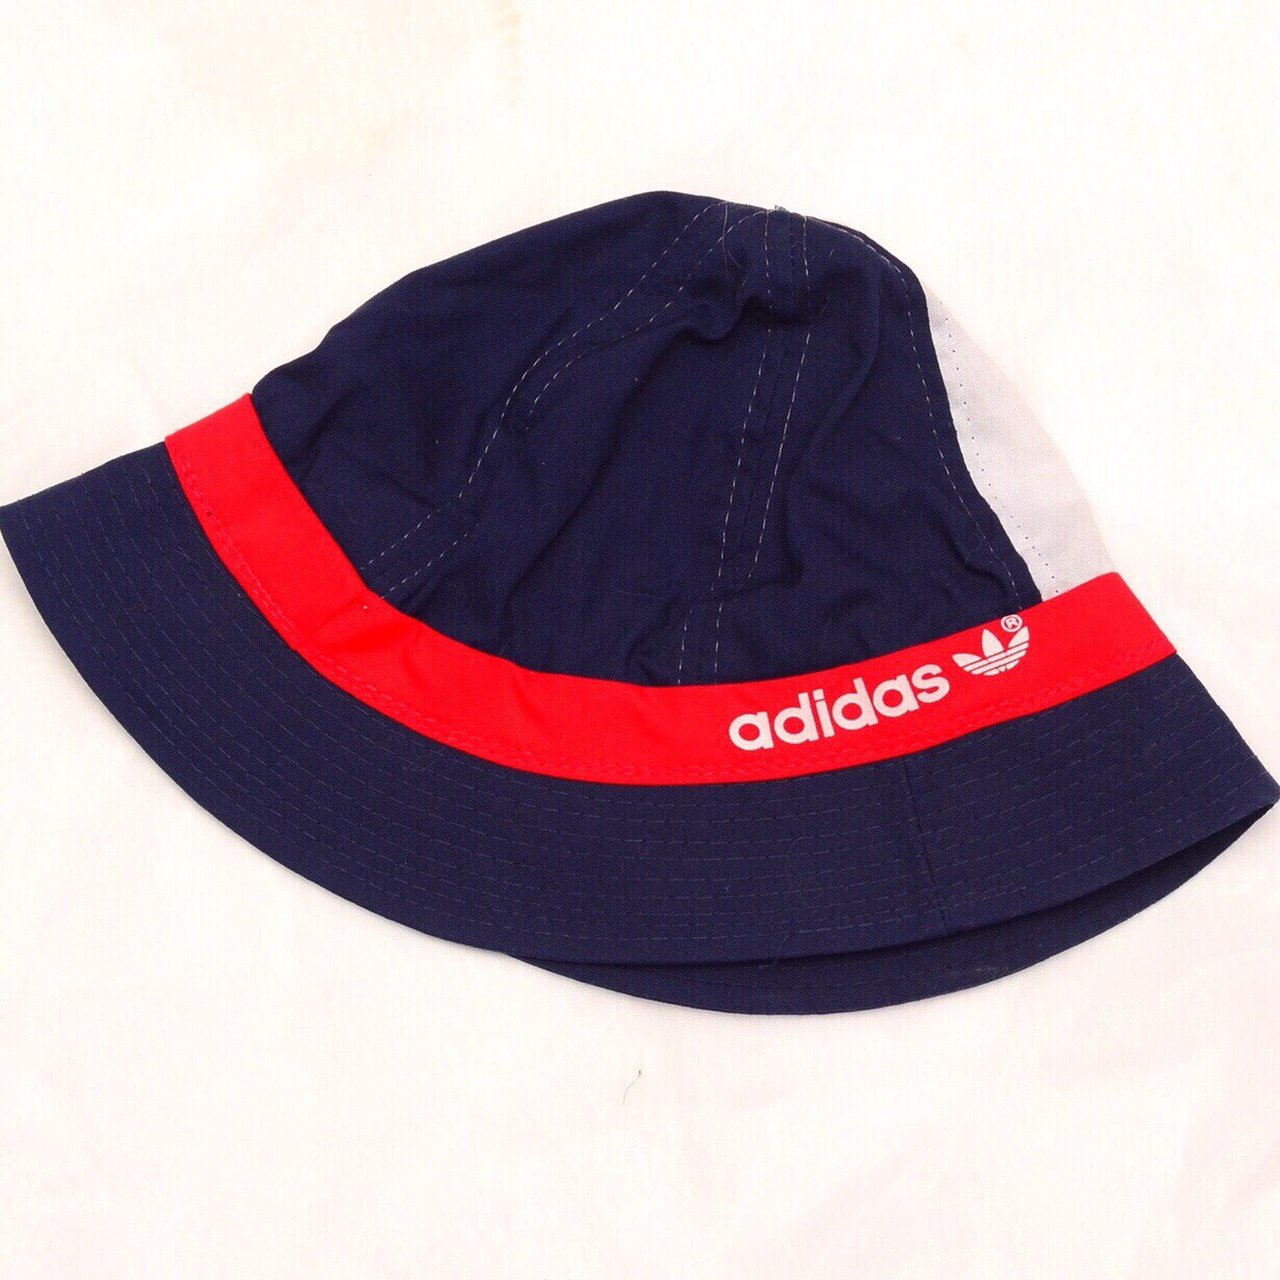 Vintage 1980 s adidas bucket hat! This baby is a special and - Depop 8156a378d4a